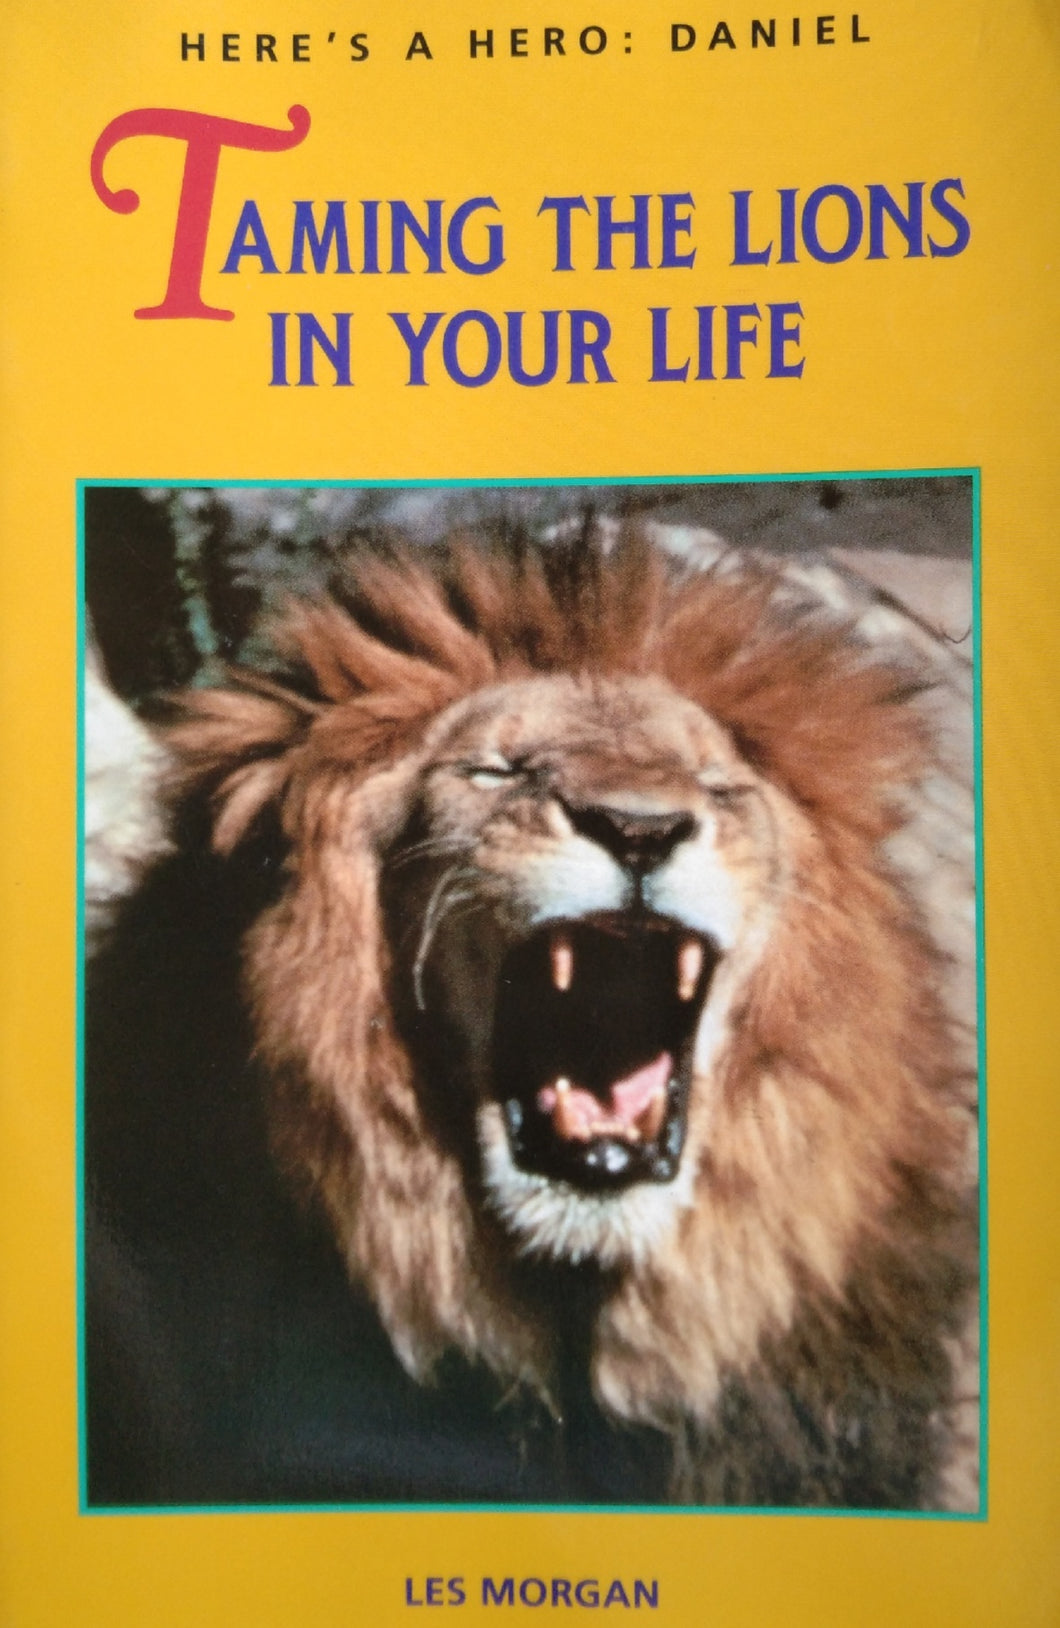 Tamibg The Lions In Your Life by Les Morgan